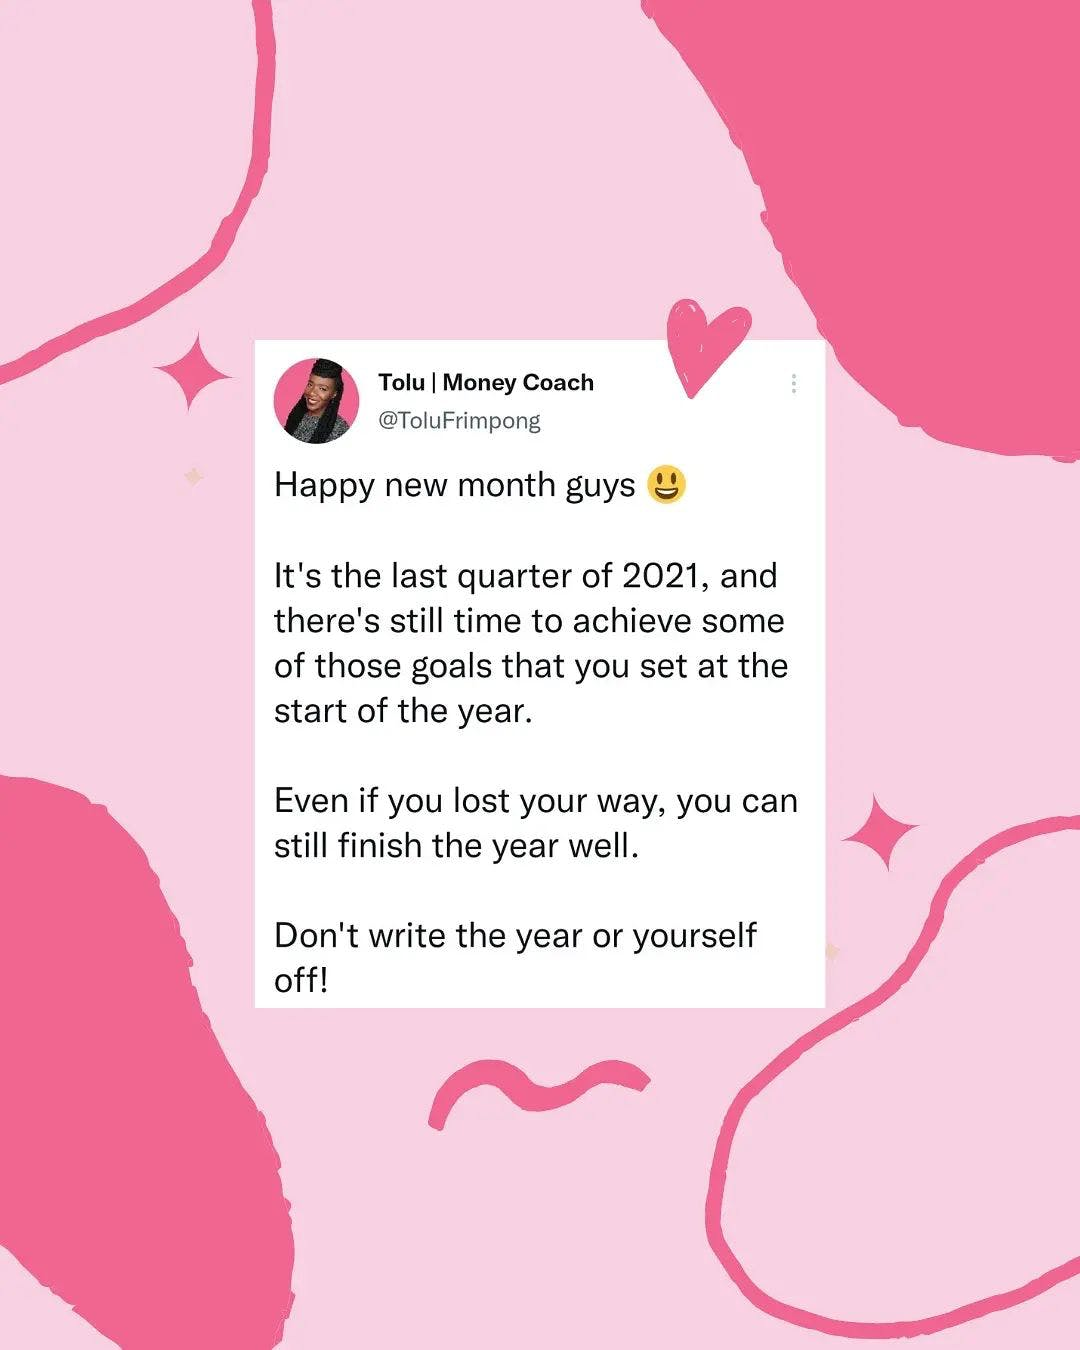 Happy New Month Guys!  We've officially entered into the last quarter of 2021, and there's still time for you to achieve your financial goals.  Don't wait until 2022 to make changes that will transform your financial tragectory. Start where you are, with what you have, and grow from there.  Your finances can look very different 3 months from today if you take action.  Whats one financial goal you can commit to accomplishing before the year is over? . . . #moneygoals #financialfreedom #financialgoals #goals #goalsetter #goalgetter #debtfreeuk #financialpeace #financialliteracy #inspiredbudget #budgeting  #debtfreecommunityuk #ukdebtfreecommunity #debtfreedom #mortgagefreejourney #debtfreeliving #debtfreejourney #savemoney #moneysaver #savingmoney #personalfinance #financialfreedom #financialindependence #fireblogger #tgifriday #fridaymotivation